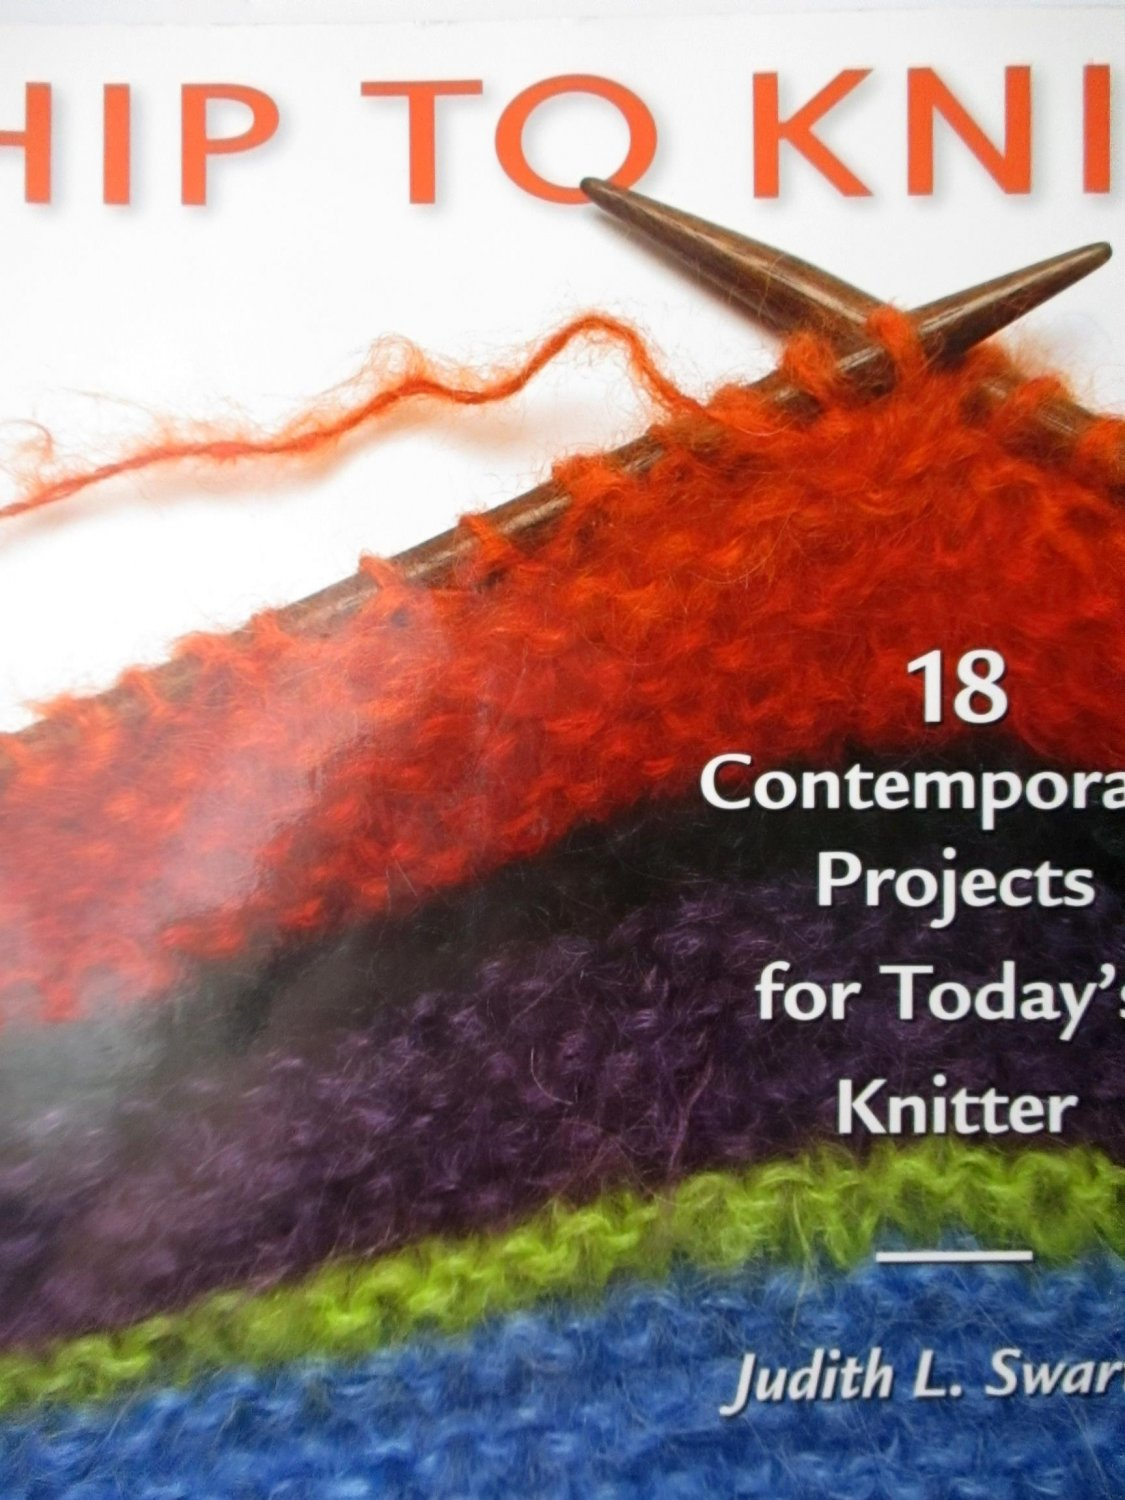 Hip to Knit (Hip to . . . Series) by Judith Swartz,crafts,knitting,